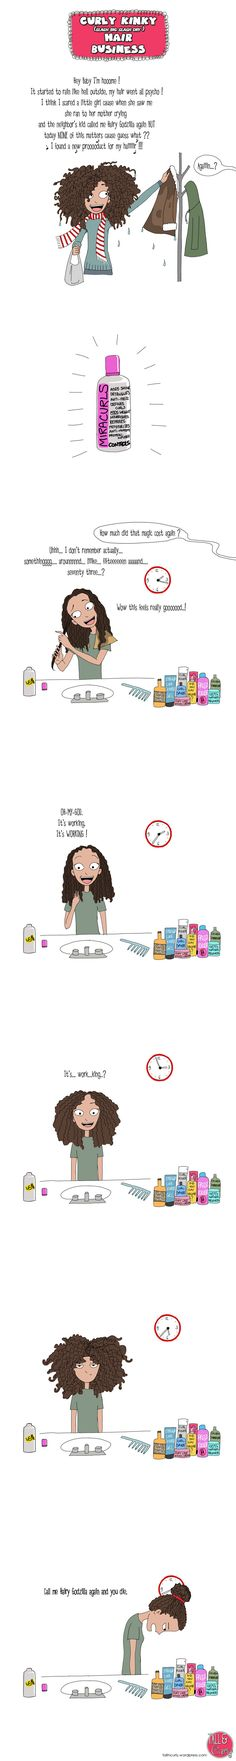 {bwahahahaha!! the curly girl struggle smh.} There are no miracles! Gotta work with your hair, not against it.